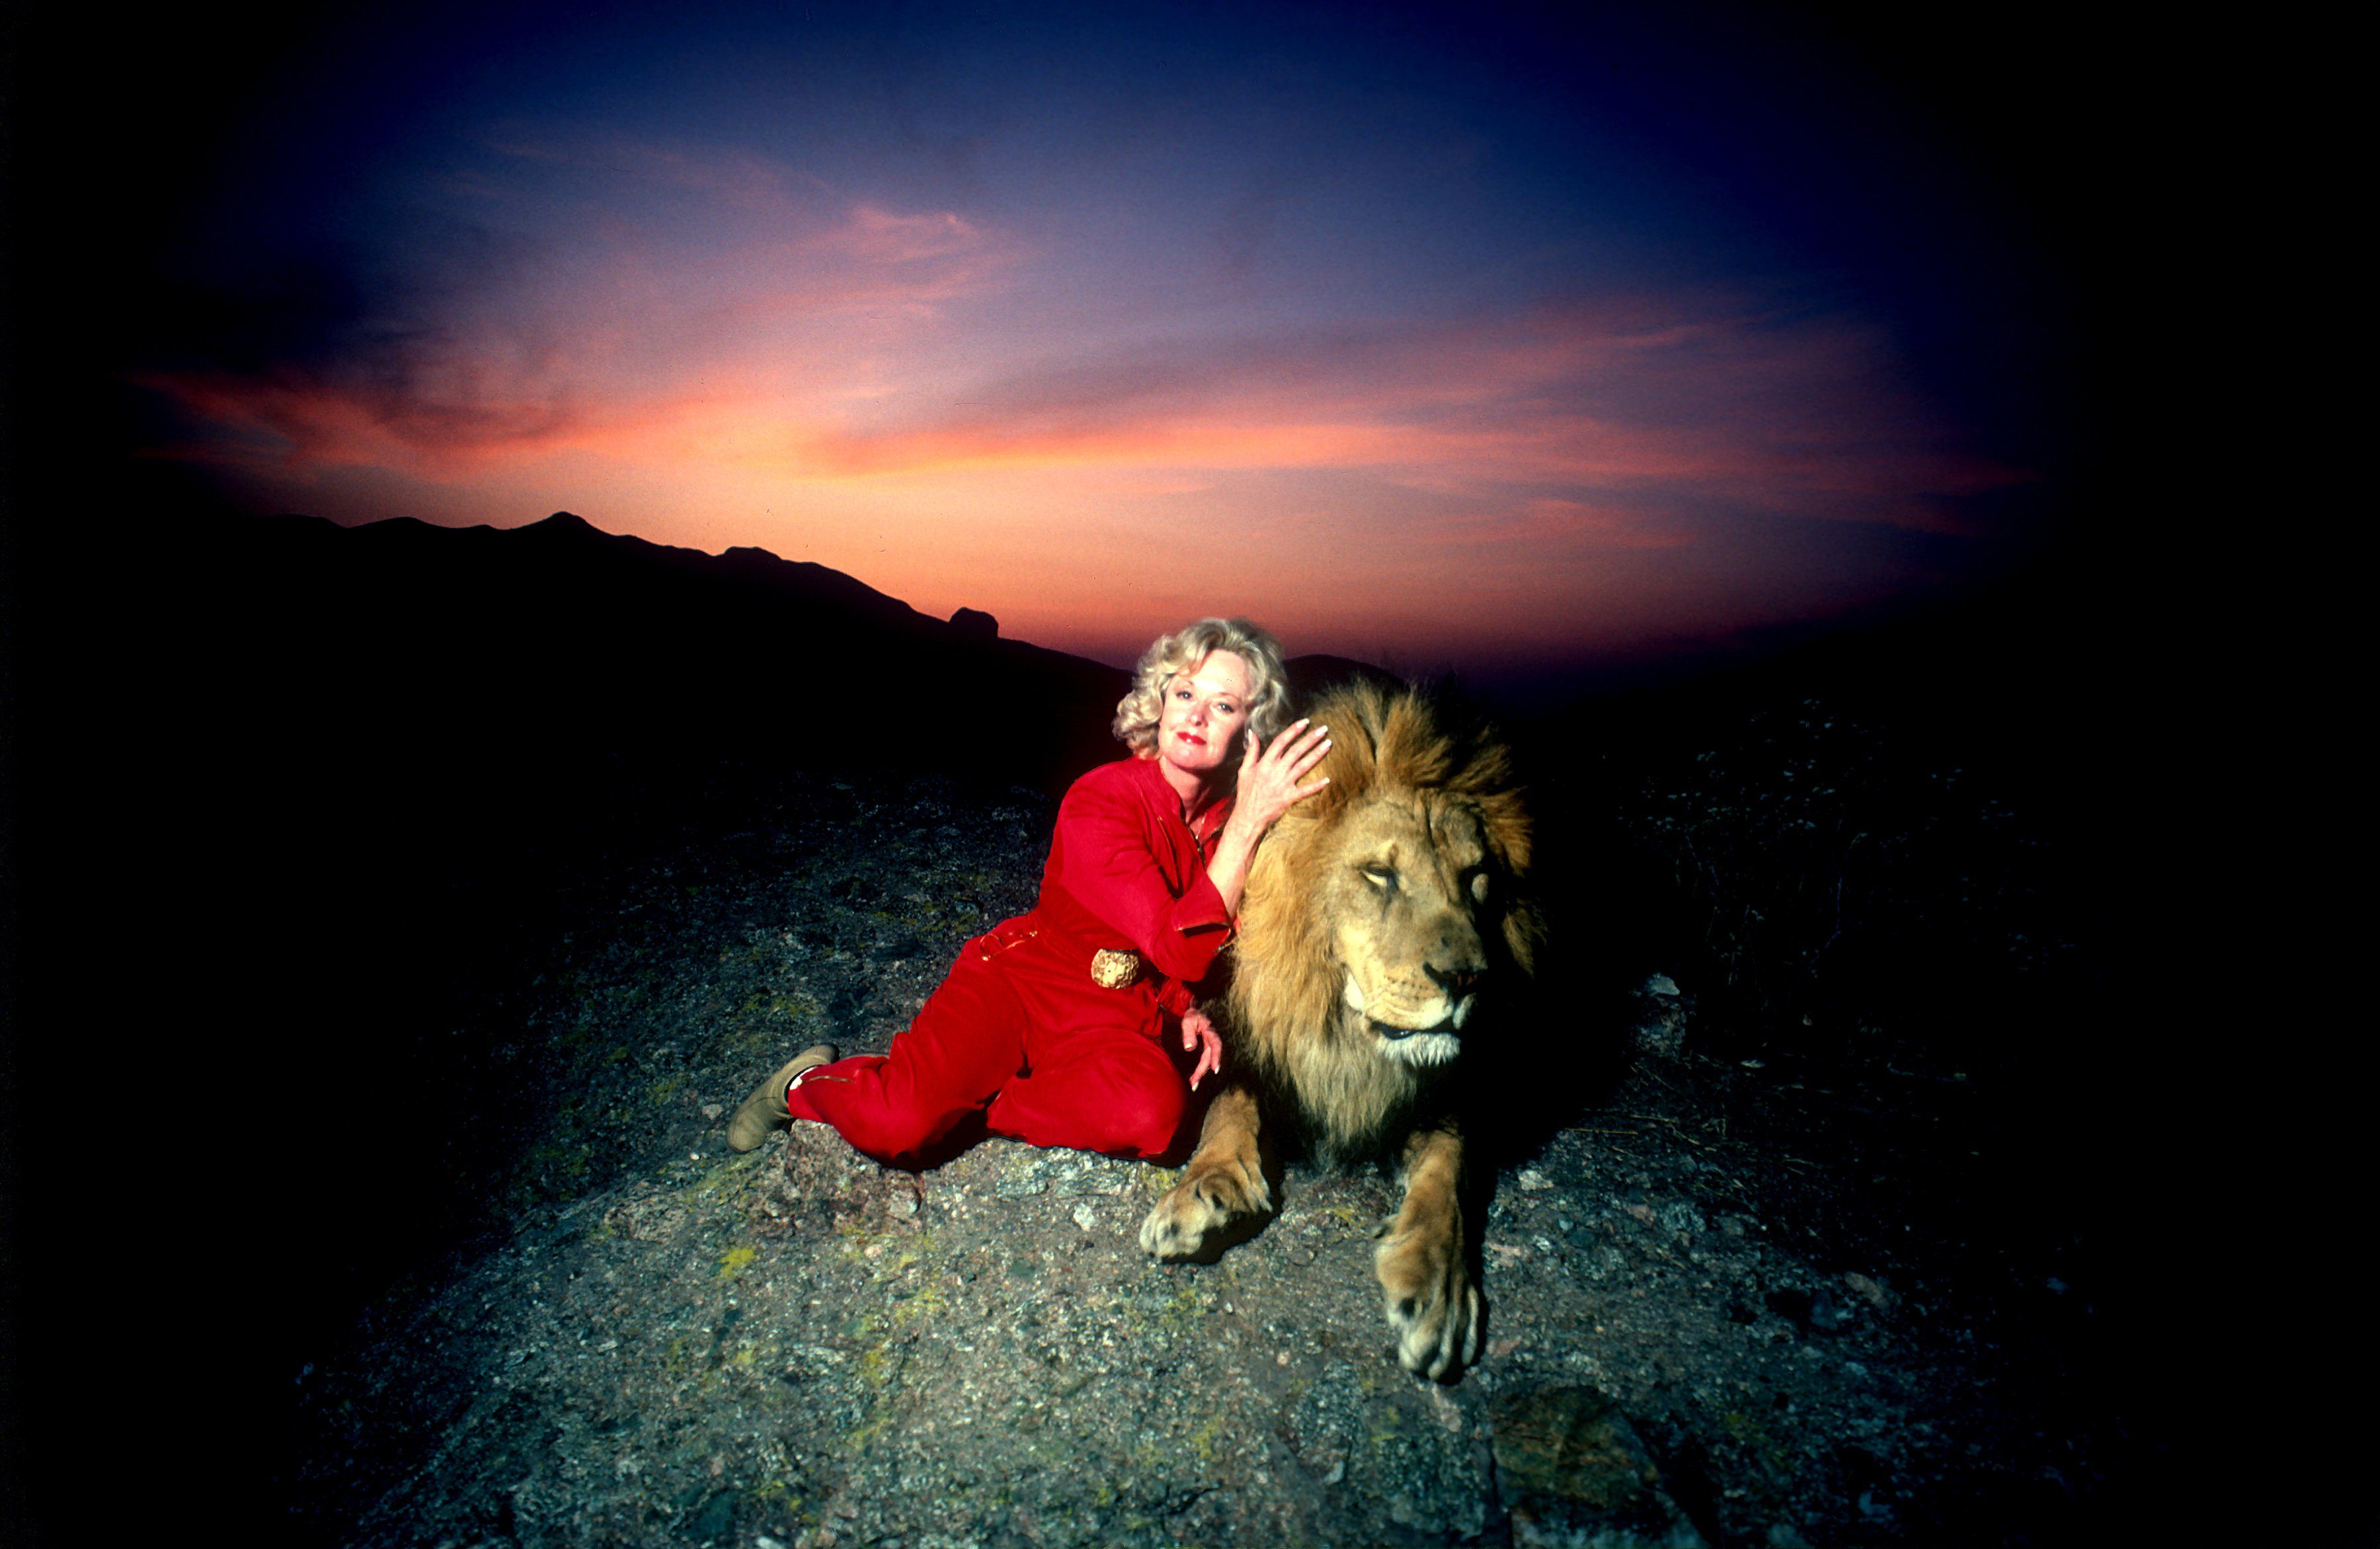 Actress Tipi Hedren, mother of Melanie Griffiths stands on a hill overlooking her Saugus Animal reserve with a full grown male lion. November 16, 1983 on he mountainside in Saugus, California. | Source: Getty Images